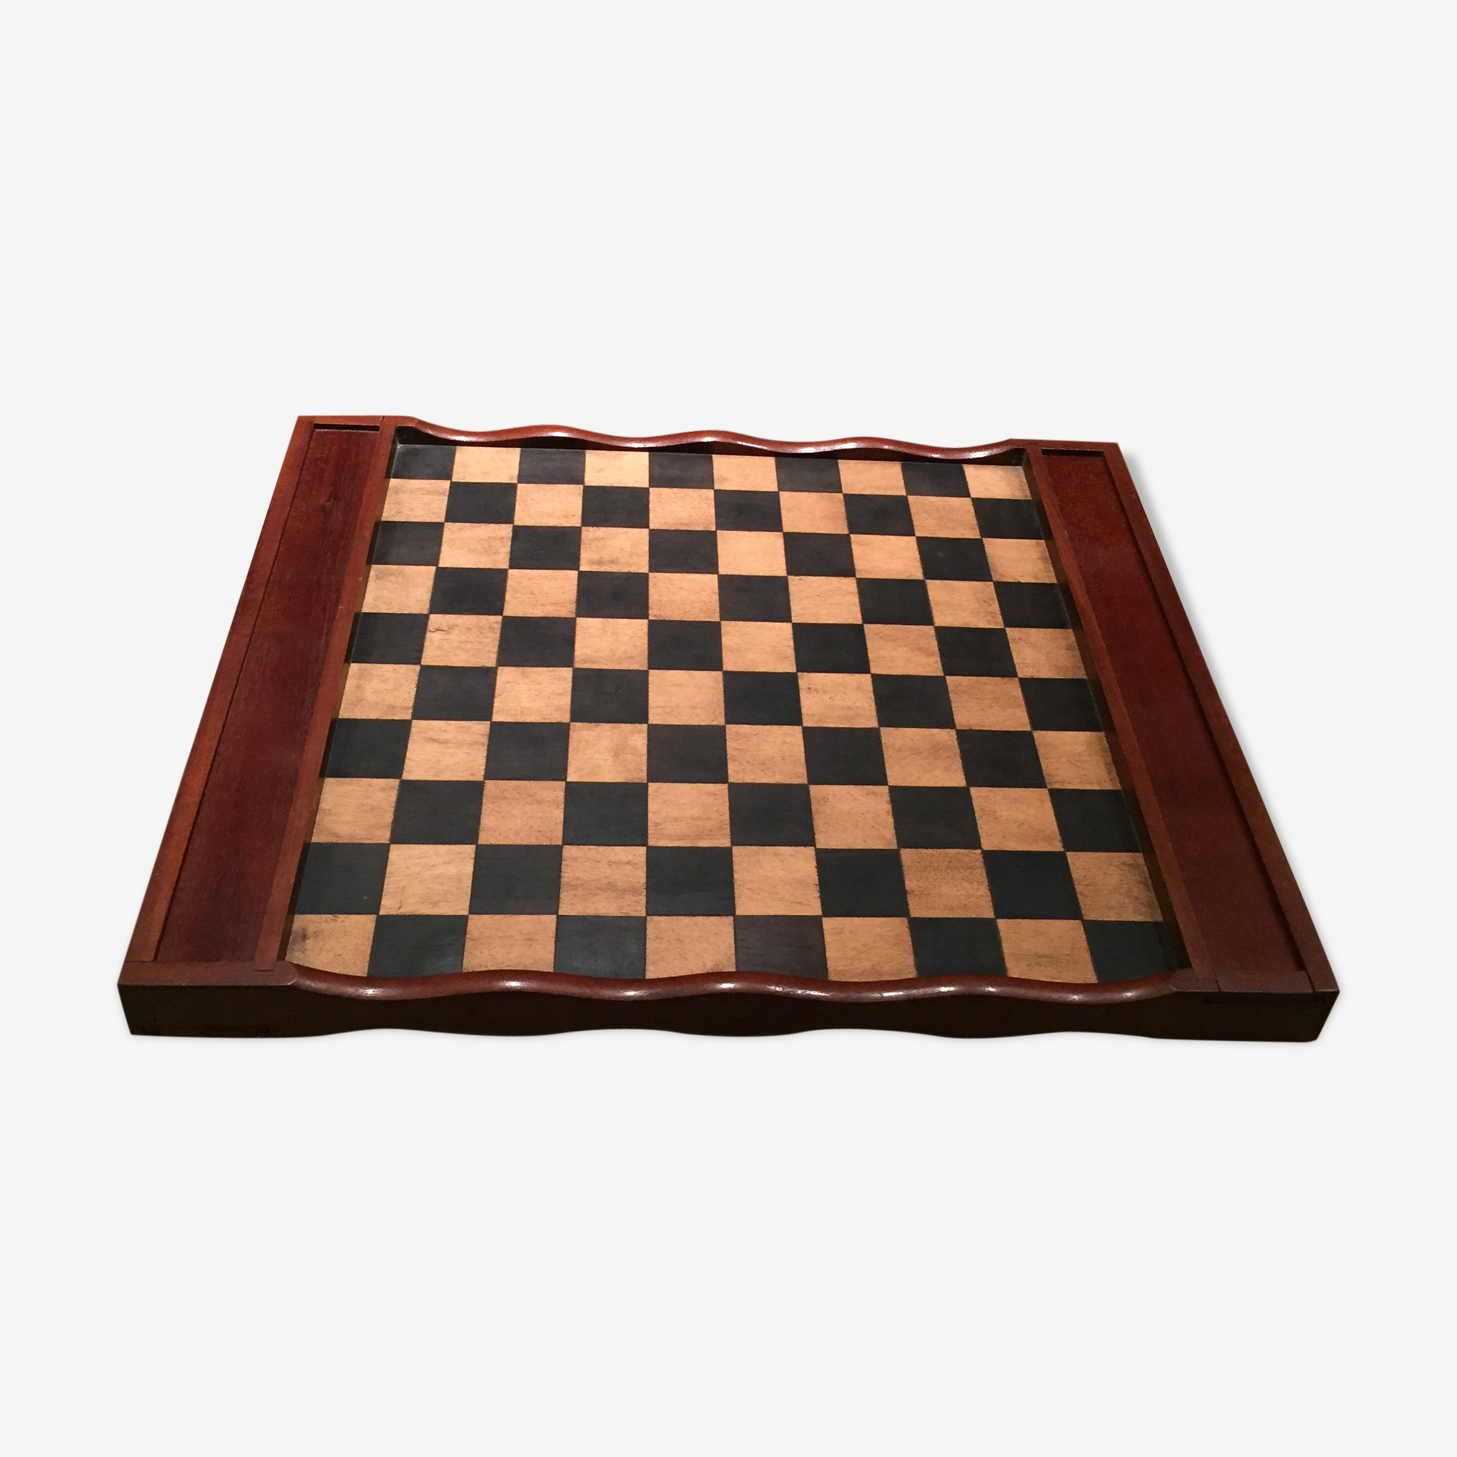 Old checkers and chess game